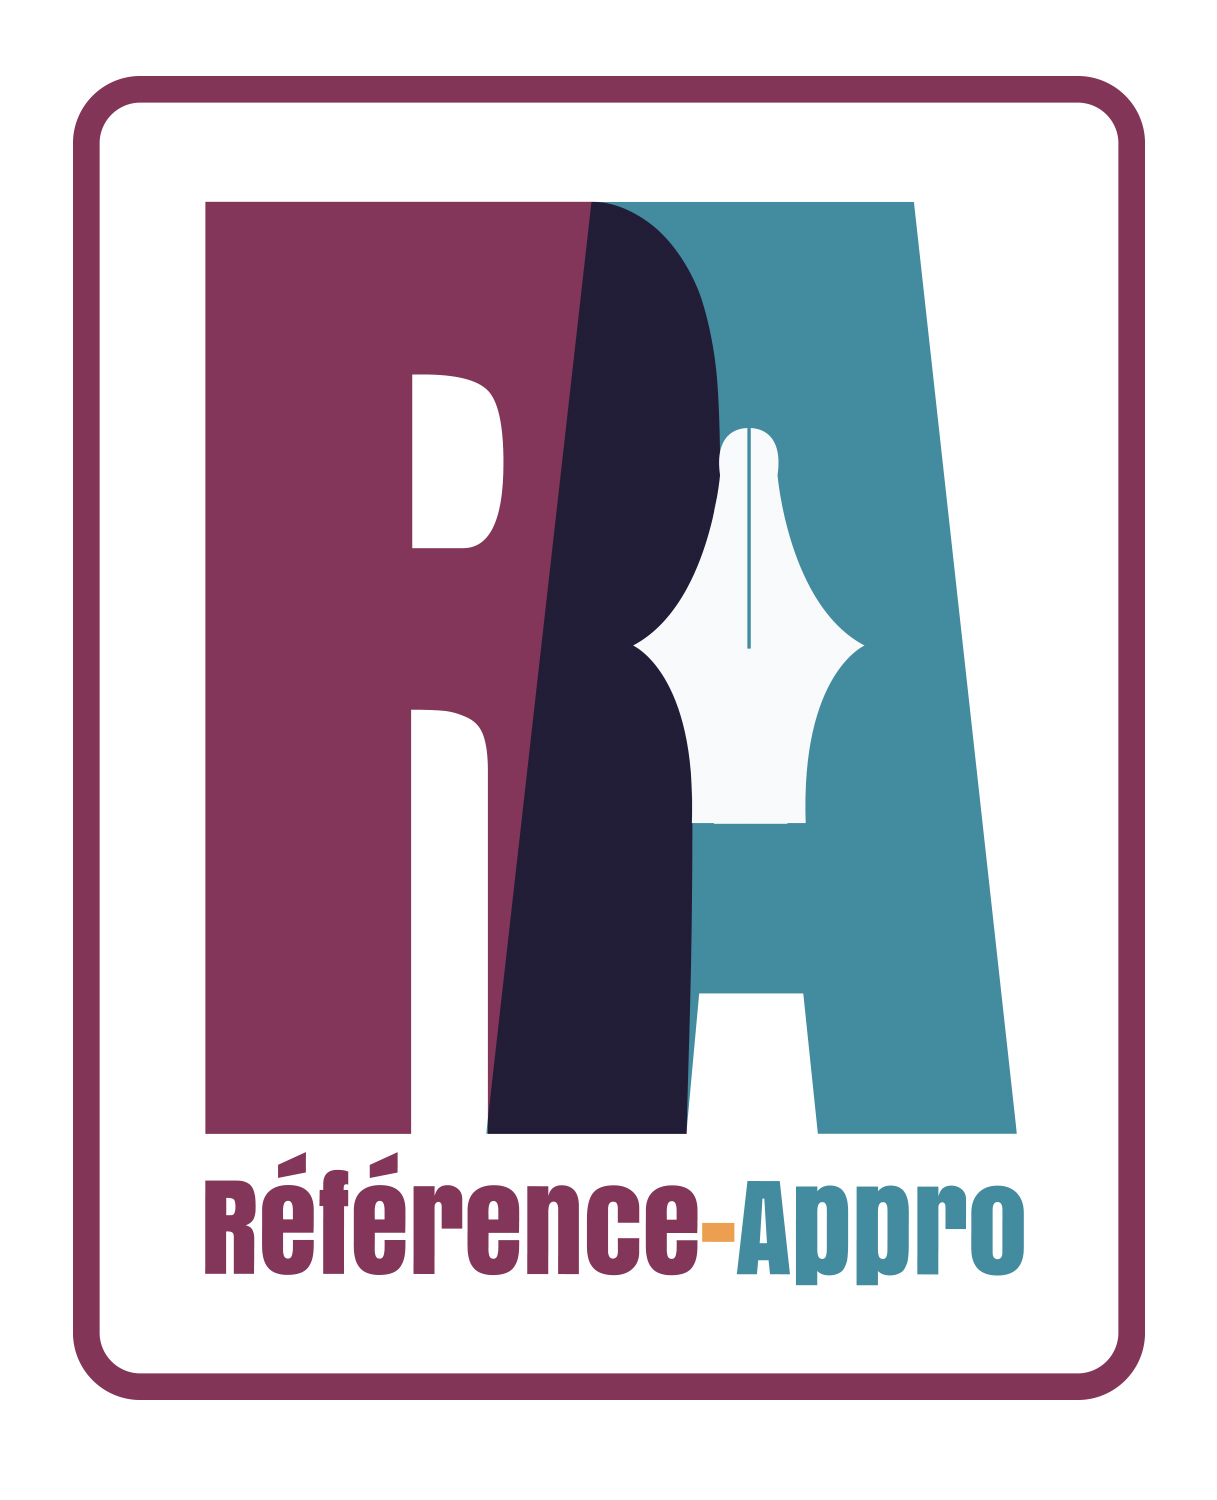 logo reference appro